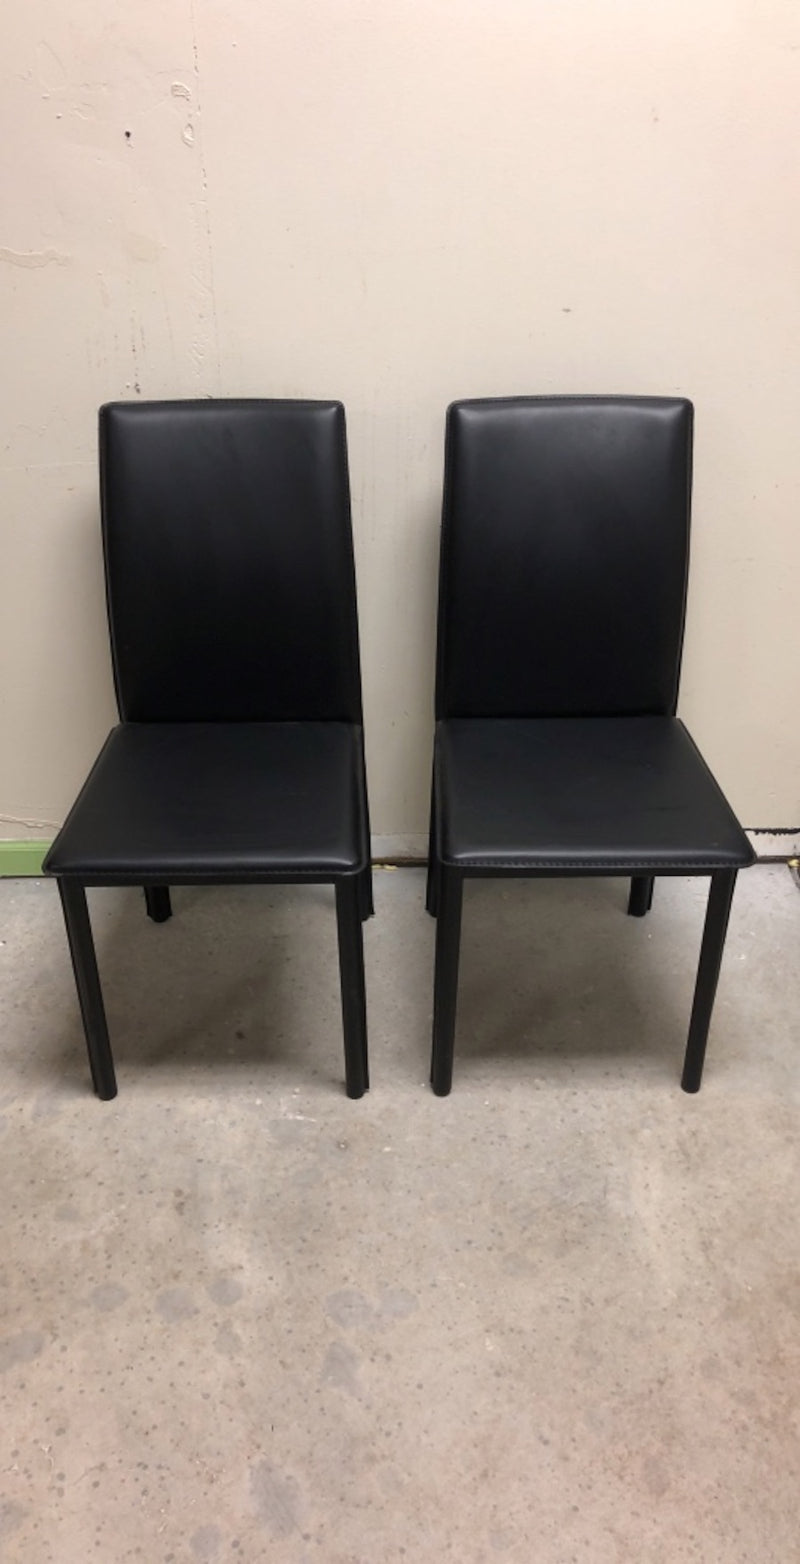 Black Dining Room Chairs